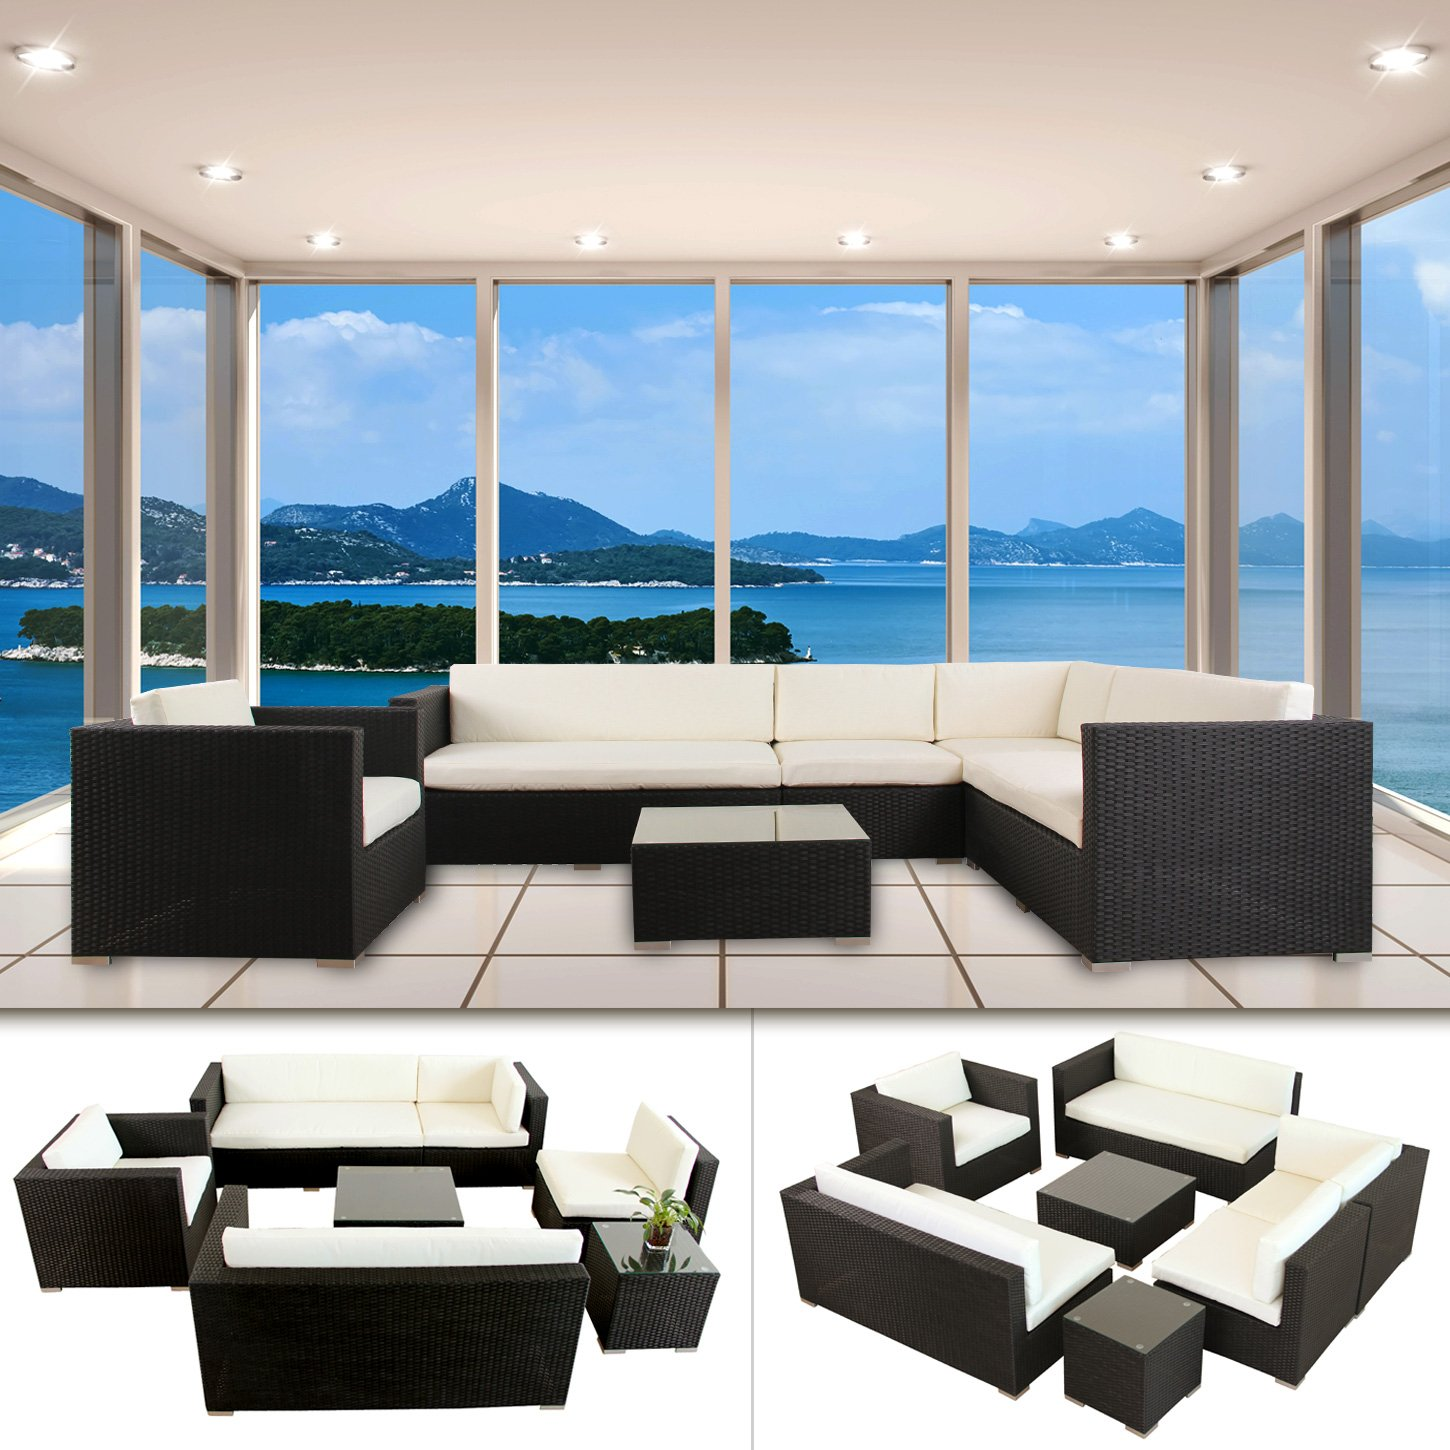 napoli polyrattan schwarz gartenm bel rattan lounge gartenset sitzgruppe alu g nstig bestellen. Black Bedroom Furniture Sets. Home Design Ideas